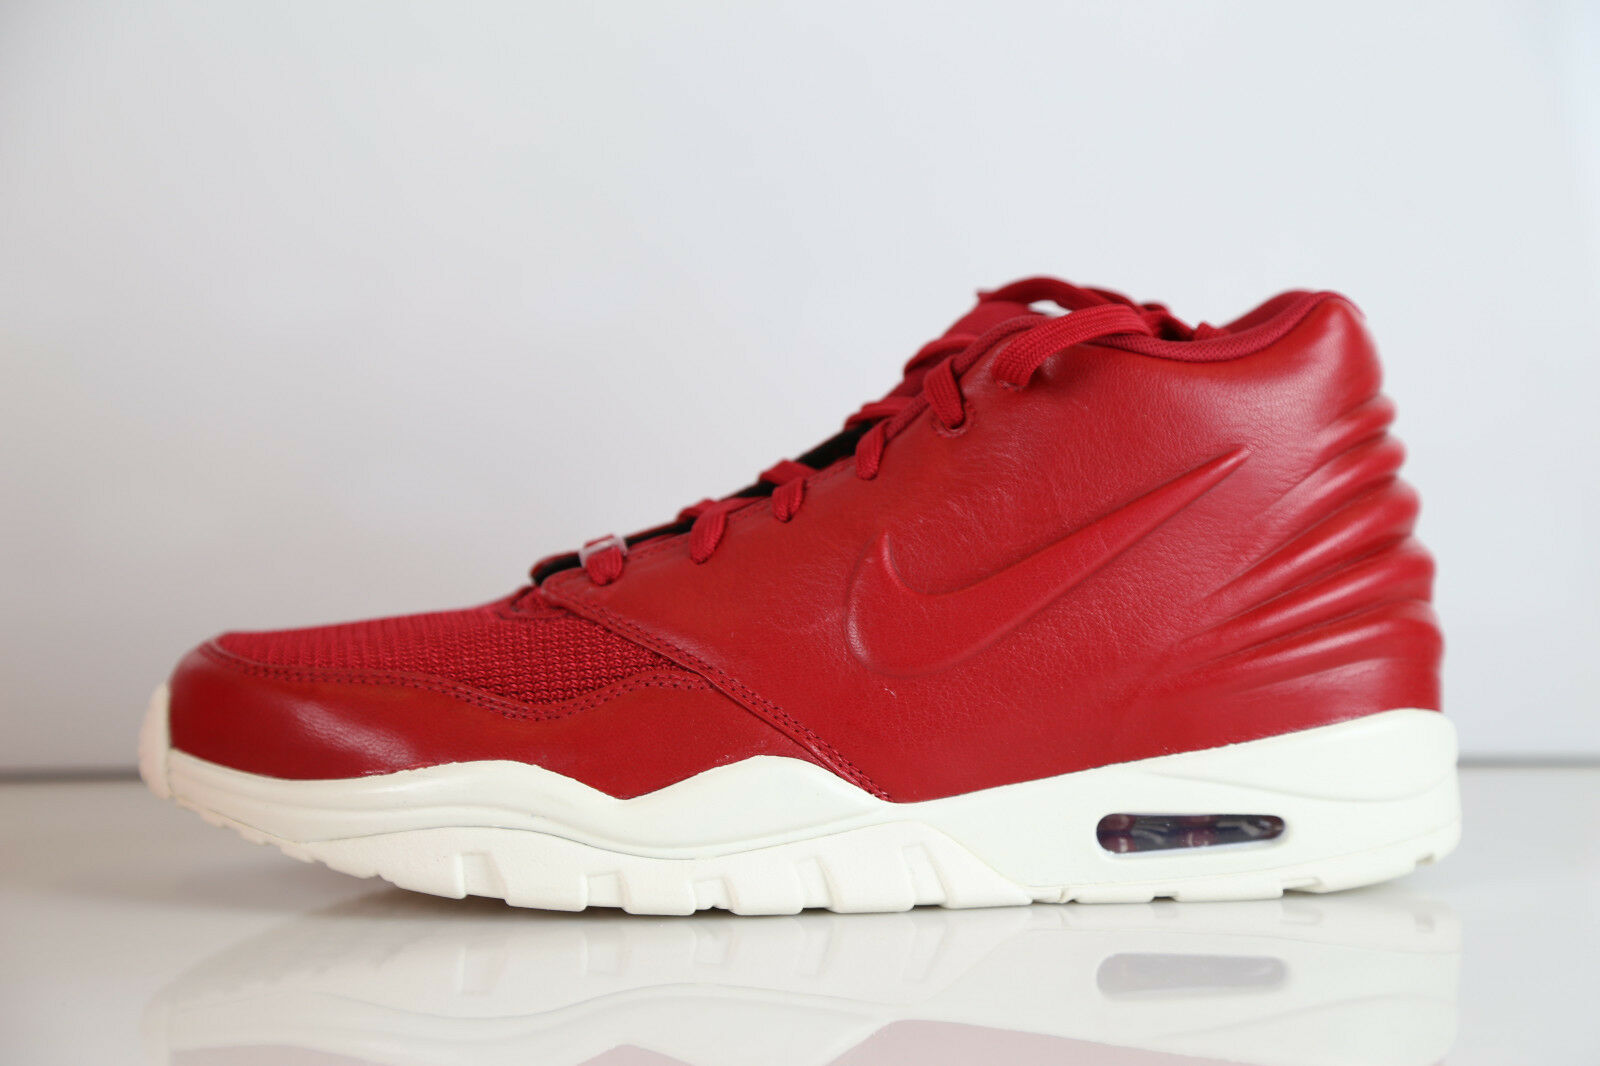 Nike Air Entertainer Gym Red Sail 819854-600 9-13 trainer max 1 3